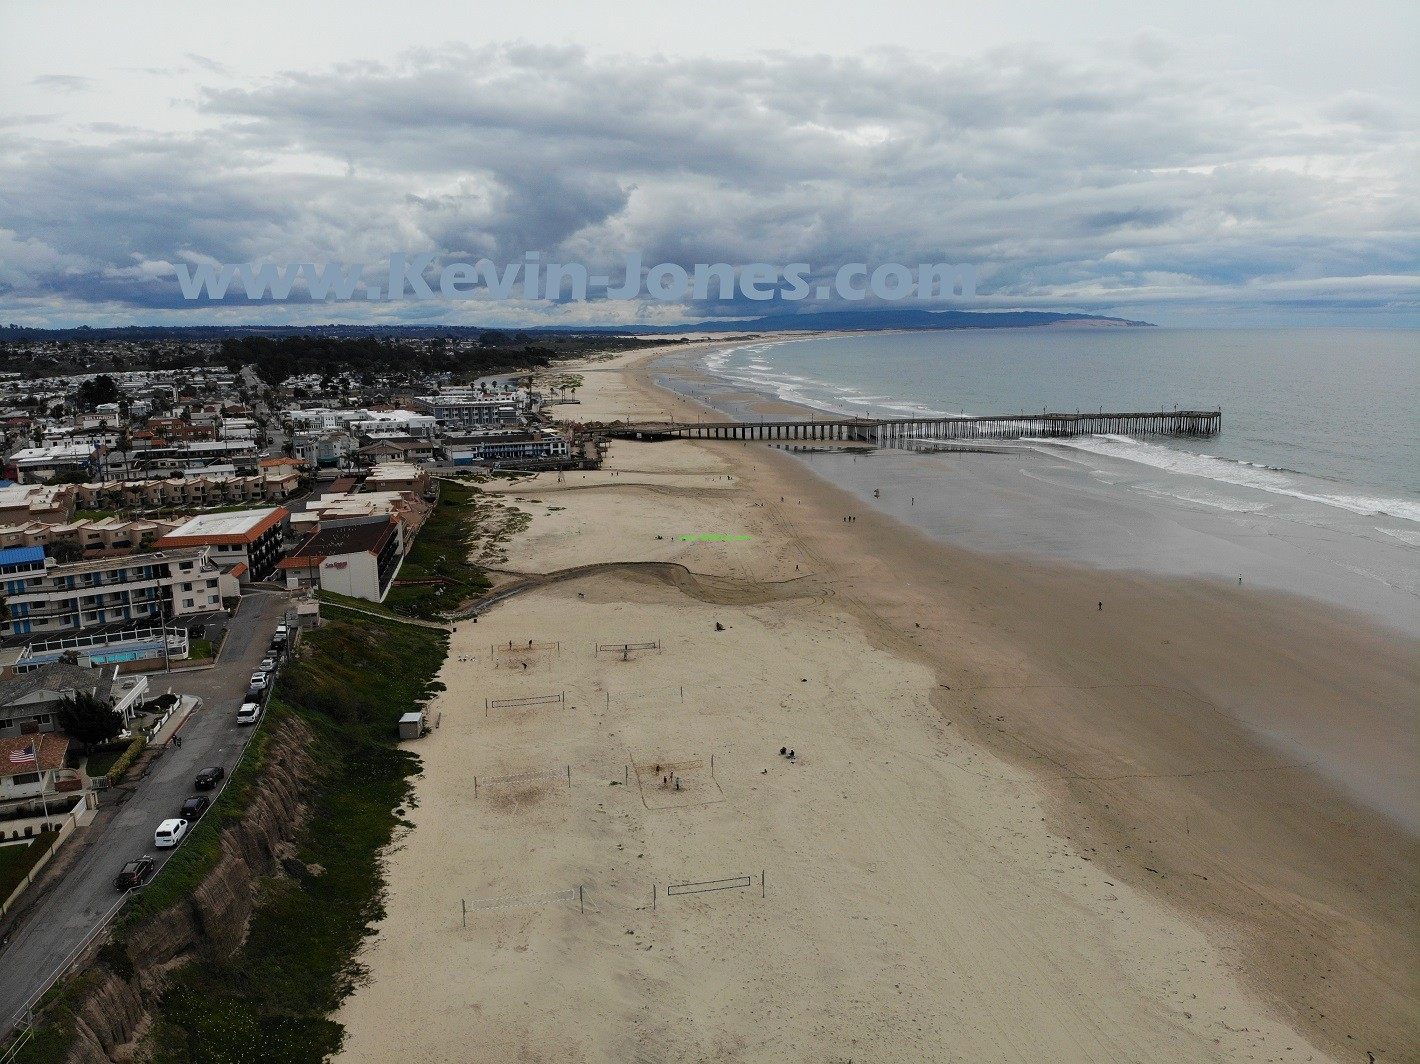 Thumbnail image for Pismo Beach Aerial